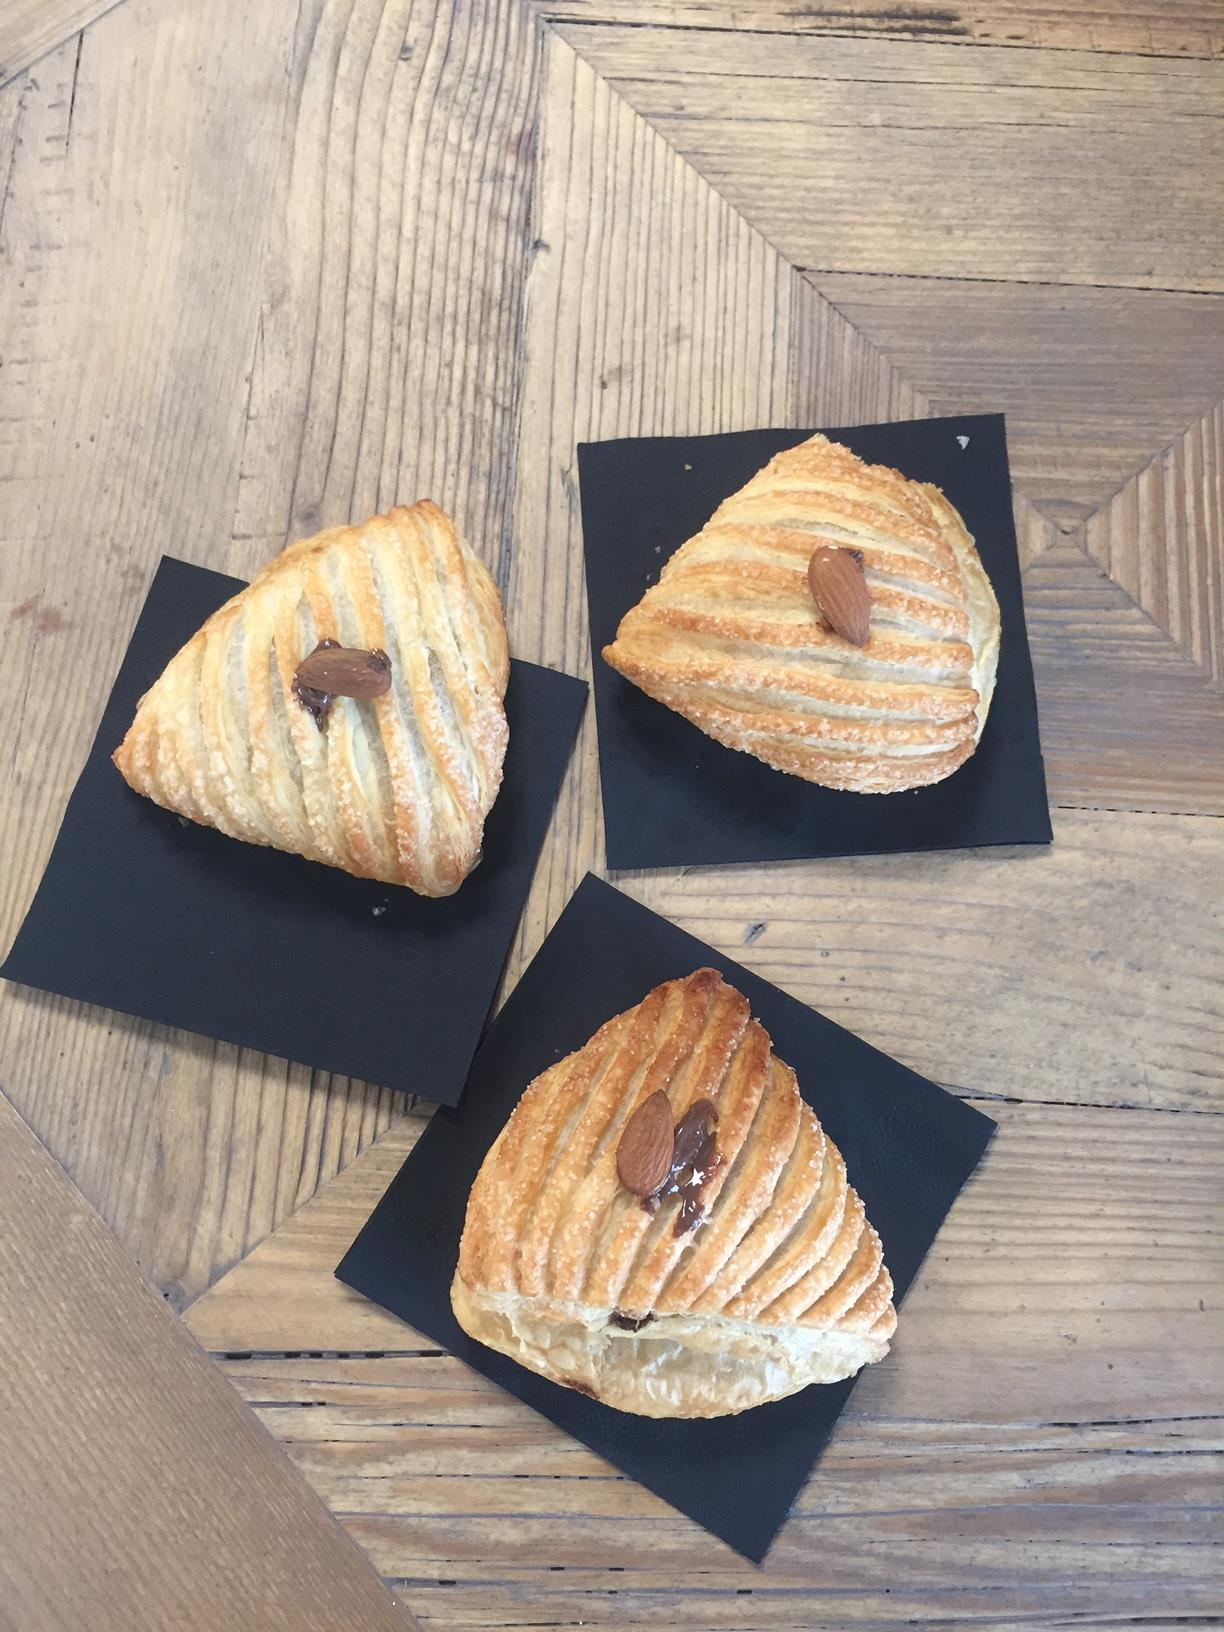 Yummy croissants at Forno d'Asolo